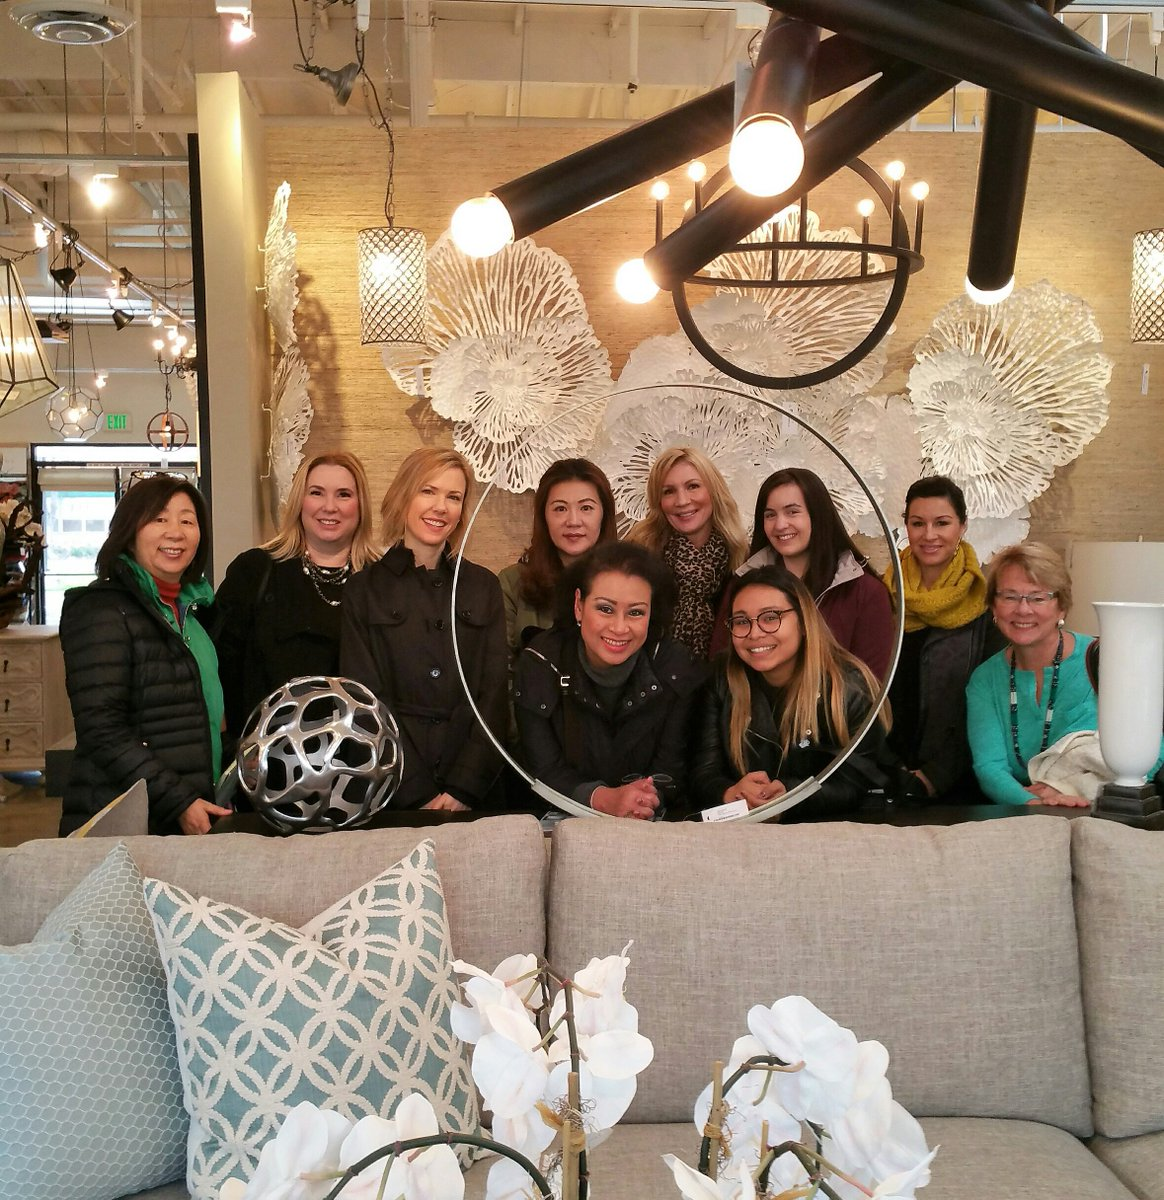 Thank You LagunaDesignCtr Design Center Our Students Had A Wonderful Day Visiting The Showrooms And Learning About Centerpictwitter SLG9tCfIWH